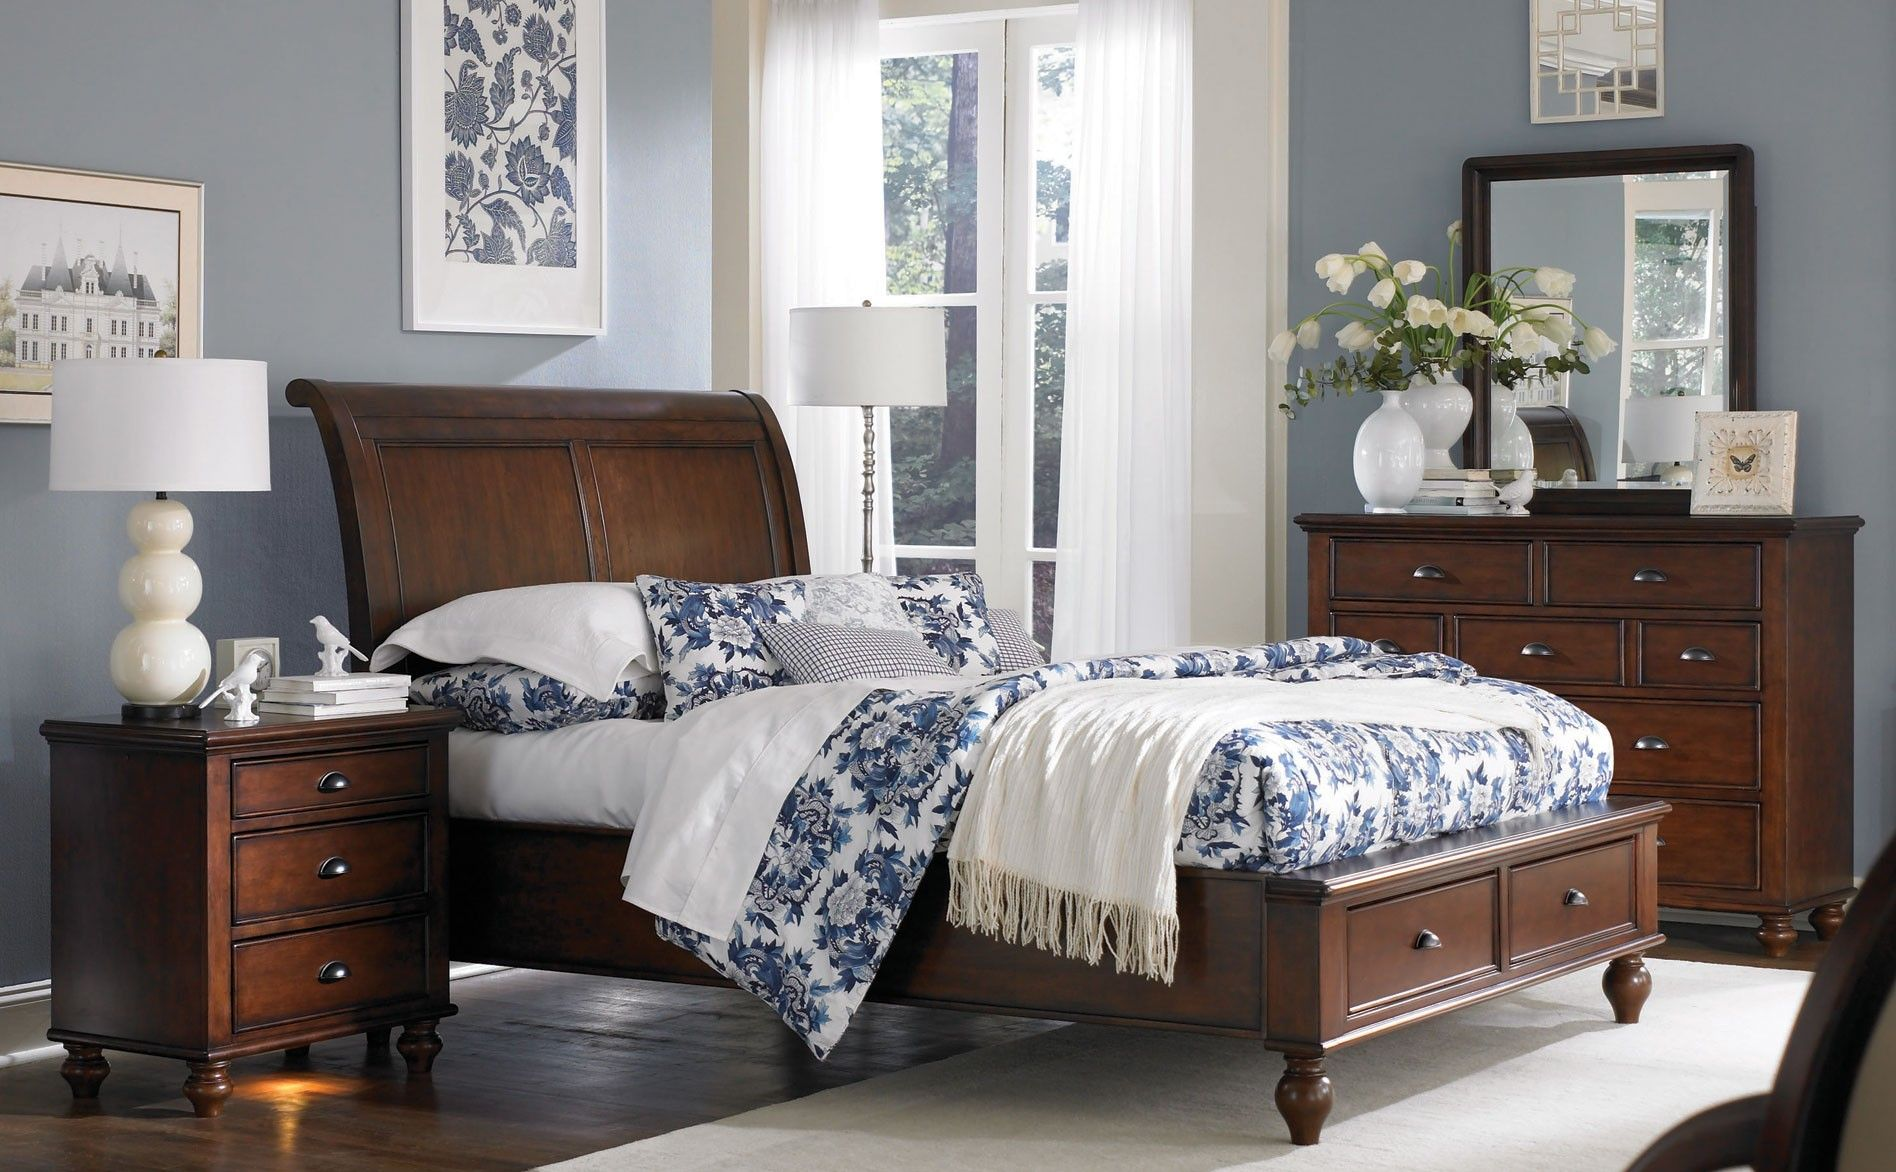 Furniture For Bedrooms Ideas Master Bedroom Ideas With Cherry Furniture Bedroom Bedroom